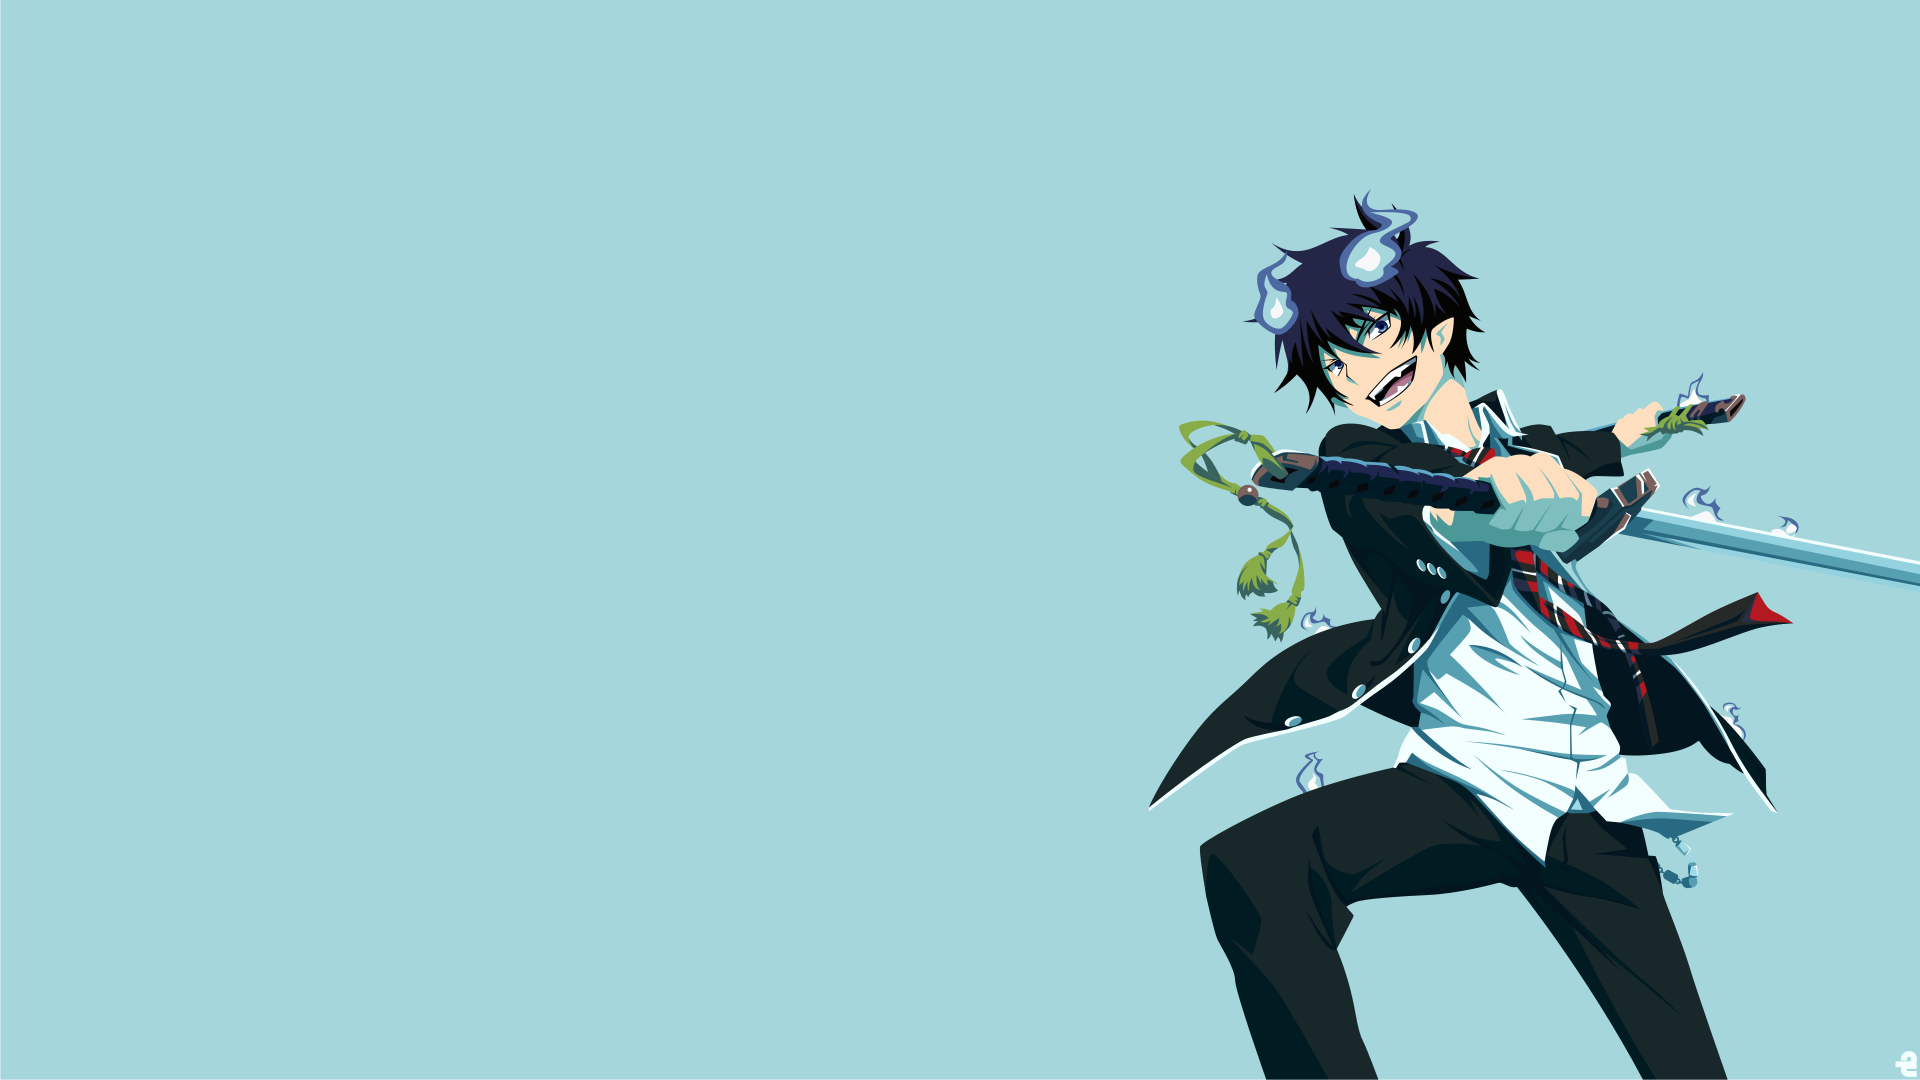 Blue Exorcist 4k Ultra HD Wallpaper | Background Image | 3840x2160 | ID:793435 - Wallpaper Abyss